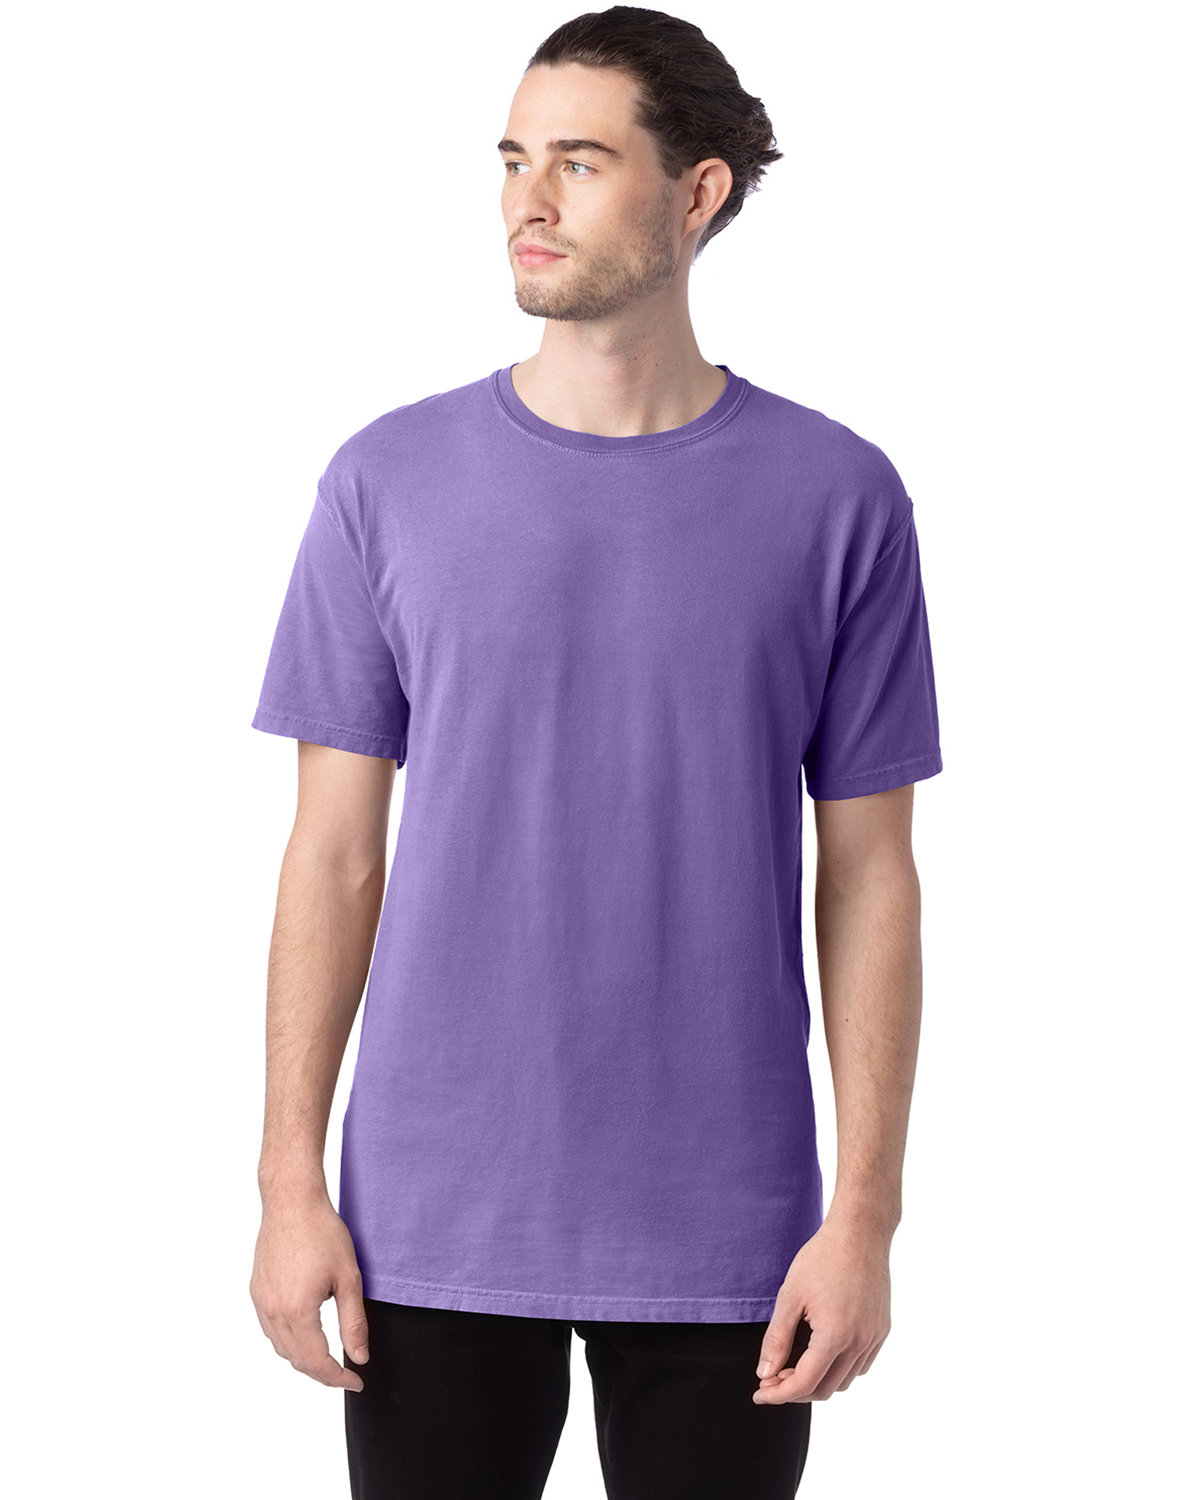 ComfortWash by Hanes Men's 5.5 oz., 100% Ringspun Cotton Garment-Dyed T-Shirt LAVENDER